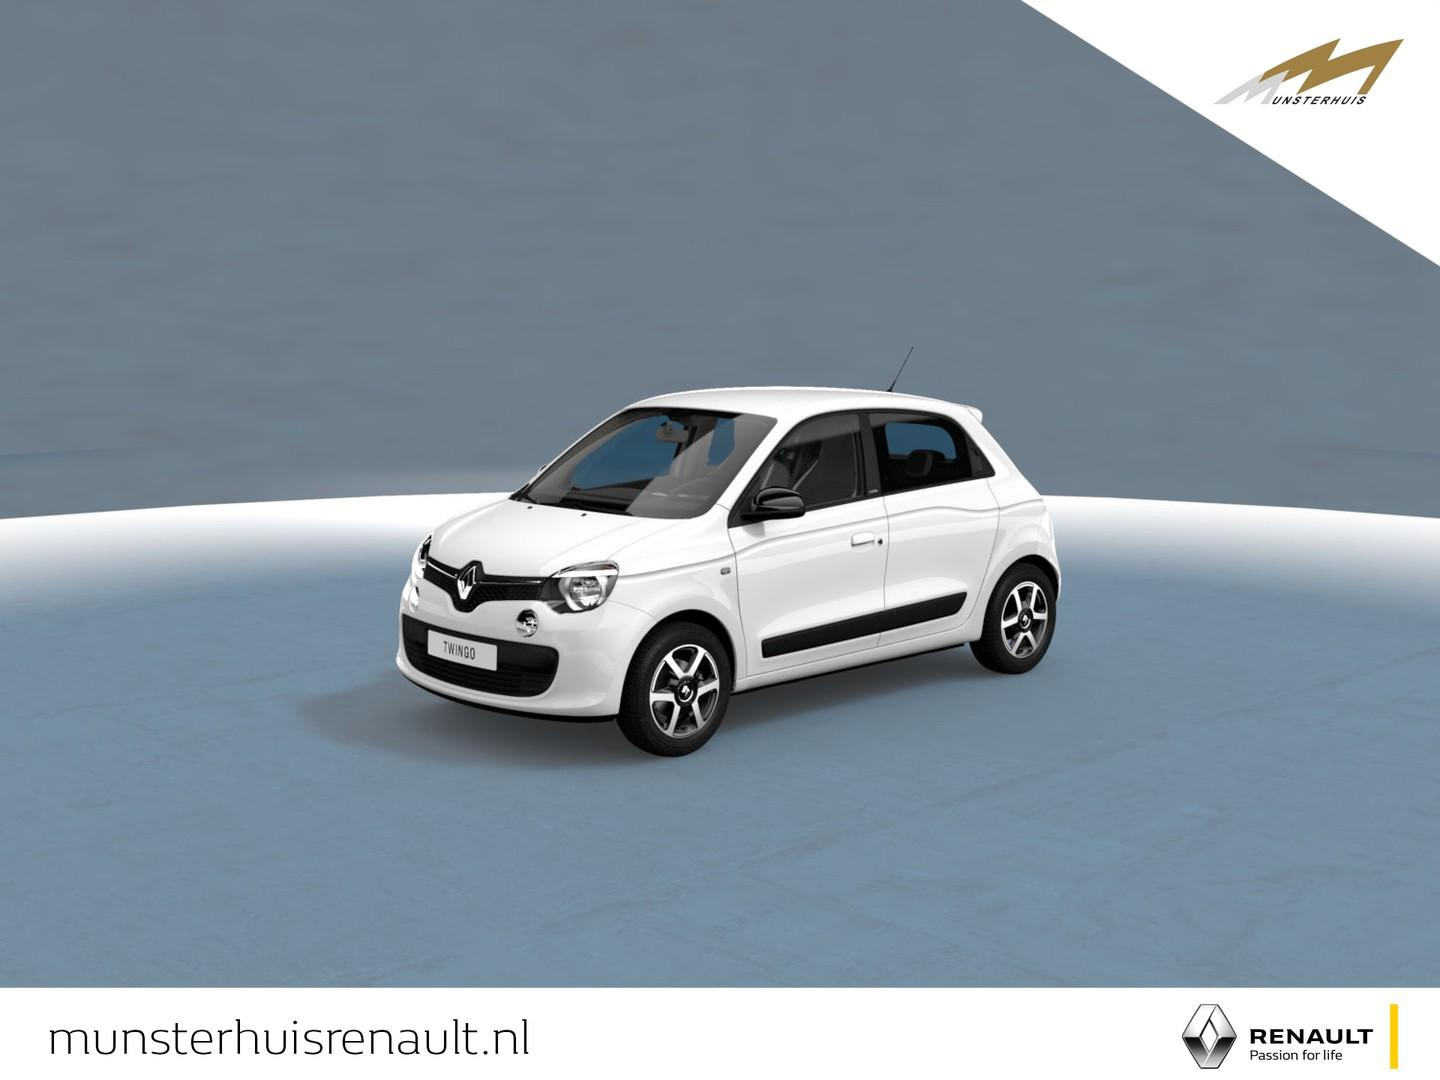 Renault Twingo Sce 70 limited - nu €257,-* met private lease !!